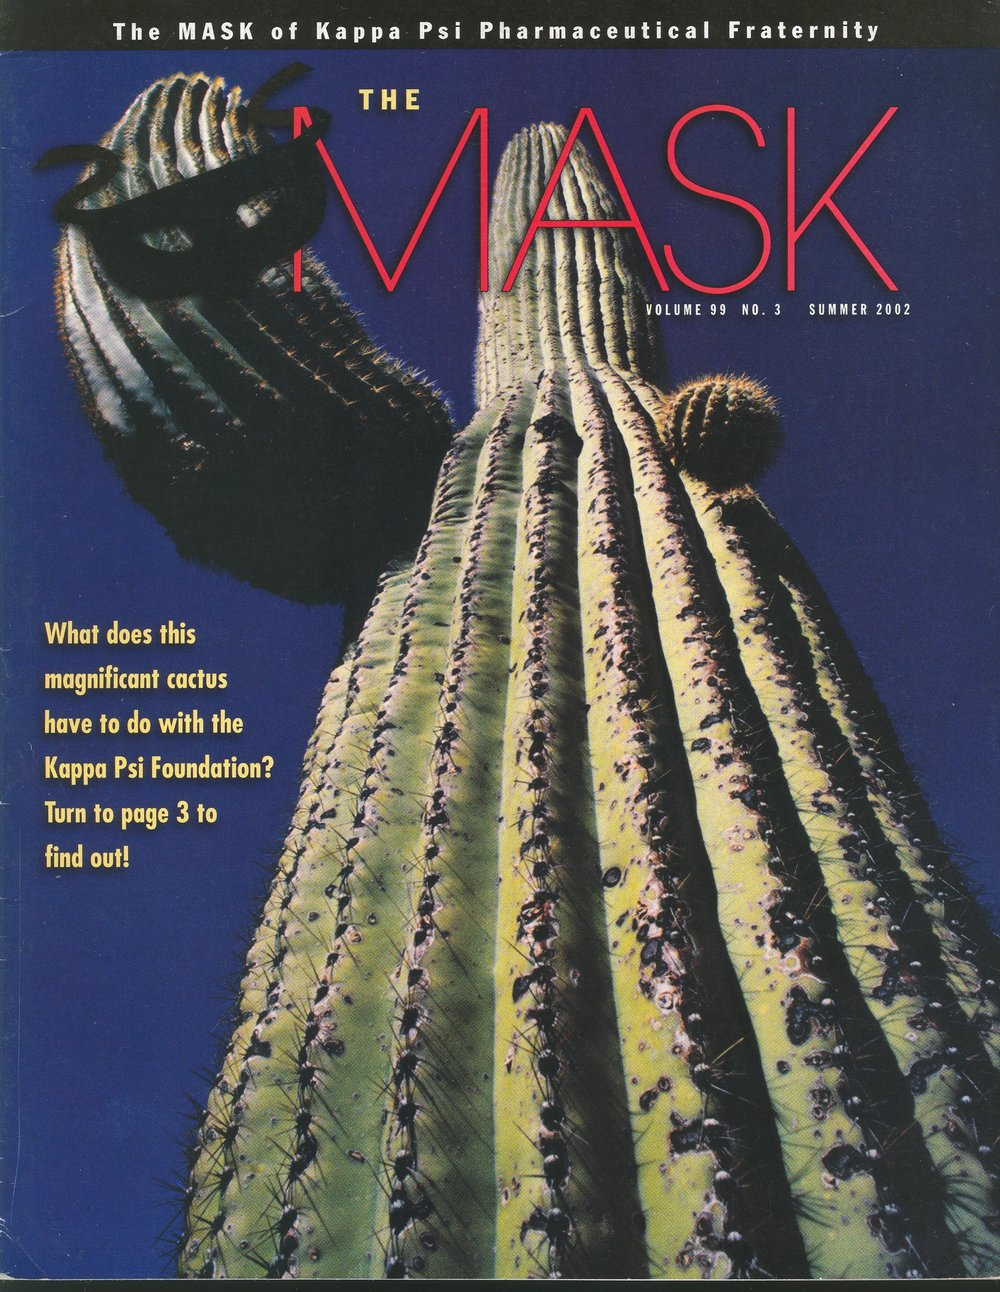 mask_cover_99-3_2002_sum.jpg